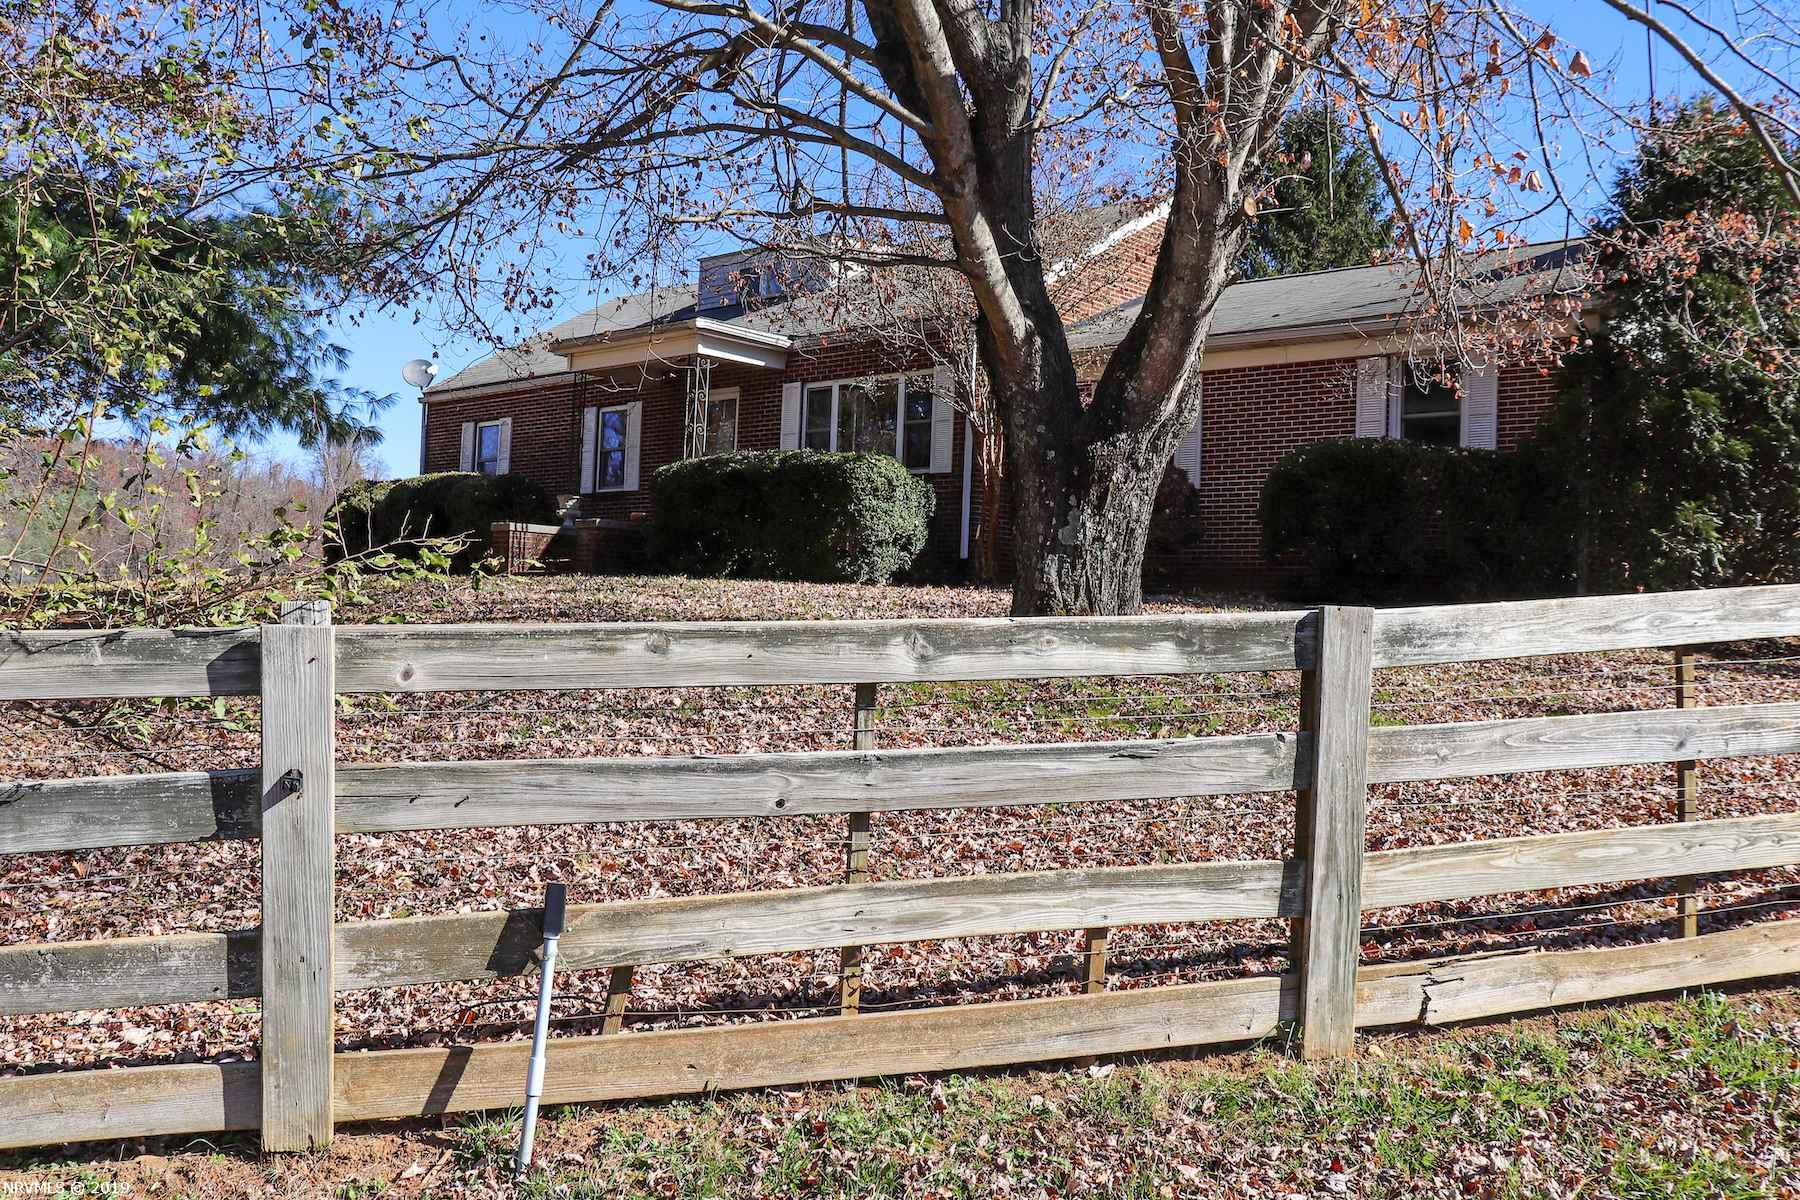 Sweet Country Home in Floyd County! This home is settled on a little over 30 acres - great farm property! Beautiful spacious living room/family room as you come in the side door. This room features a gorgeous brick gas log fireplace to keep you and your loved ones warm on those cool fall and winter nights. Really nice in-ceiling lights around the room and big windows for natural light. Step up into the kitchen which has tons of counter space! Very bright and welcoming kitchen area. Off of the kitchen is another large family room or potential dining room. Large master bedroom with plenty of space to relax from a hard day of work on the farm. Upstairs you will find a potential 4th loft style bedroom and a full bath. 4 stall barn, fenced pastures & wooded ac. for hunting or recreation!